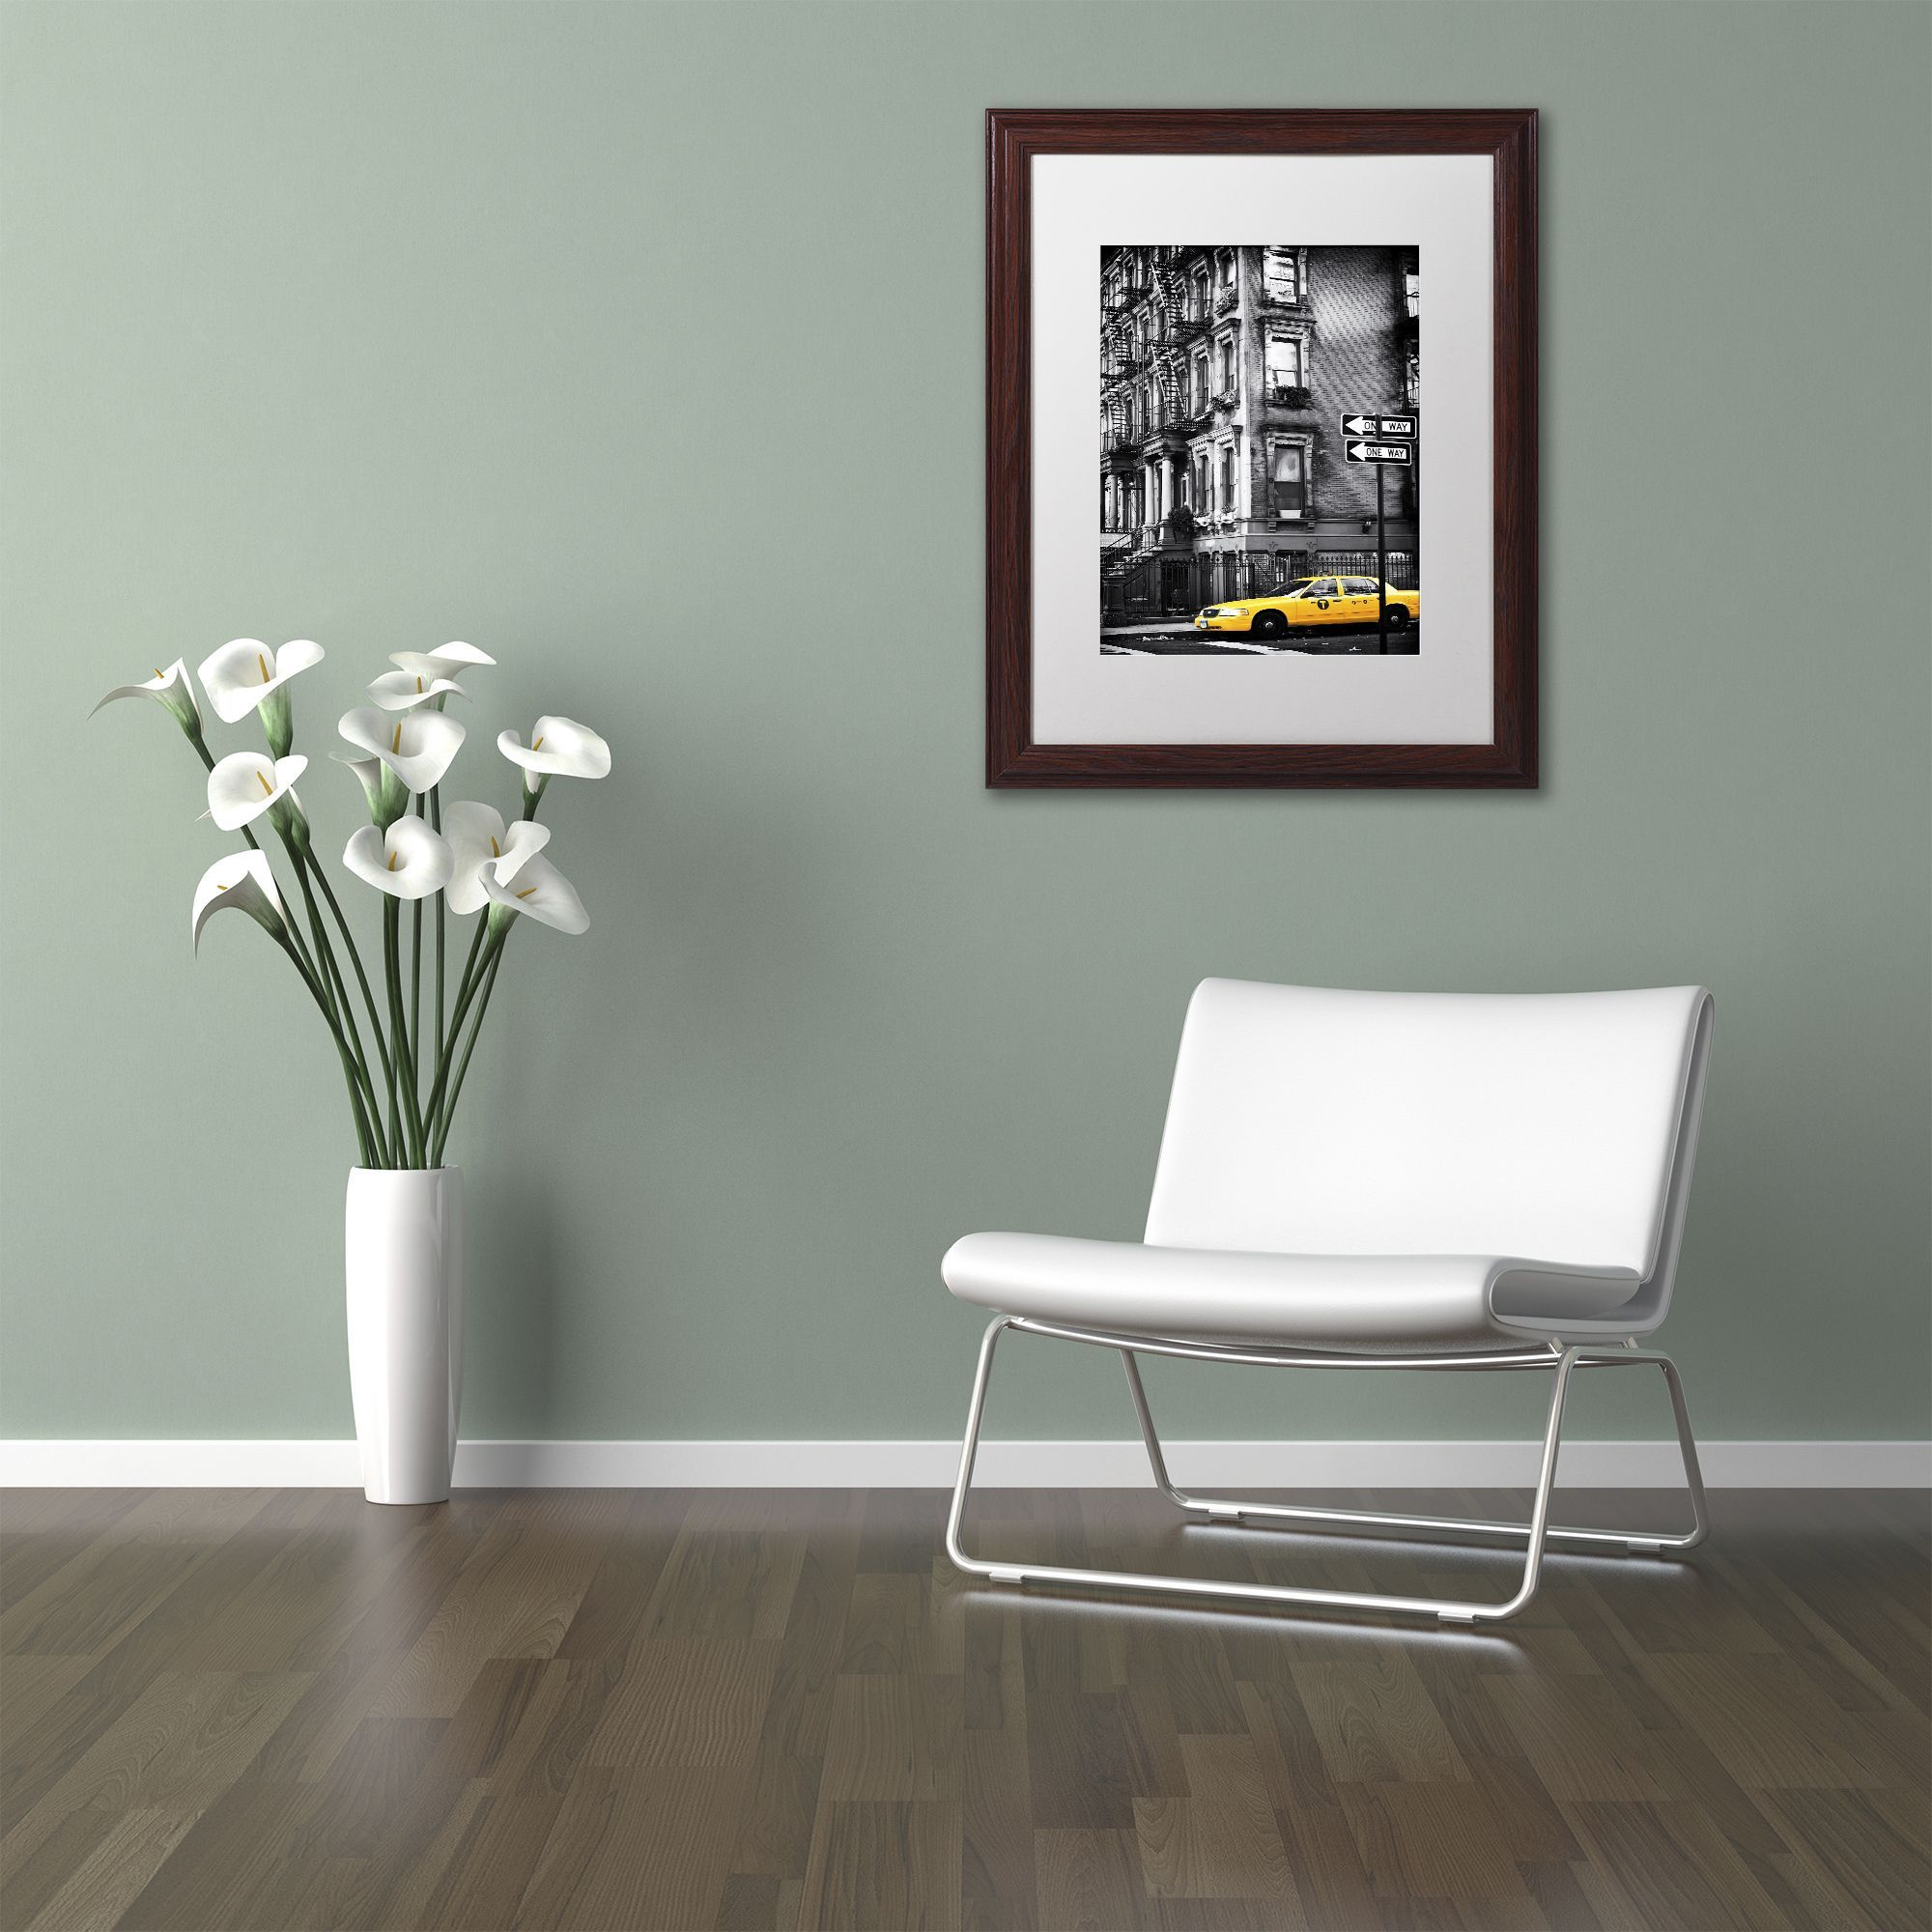 Philippe Hugonnard 'nyc Cab' Matted Framed Art